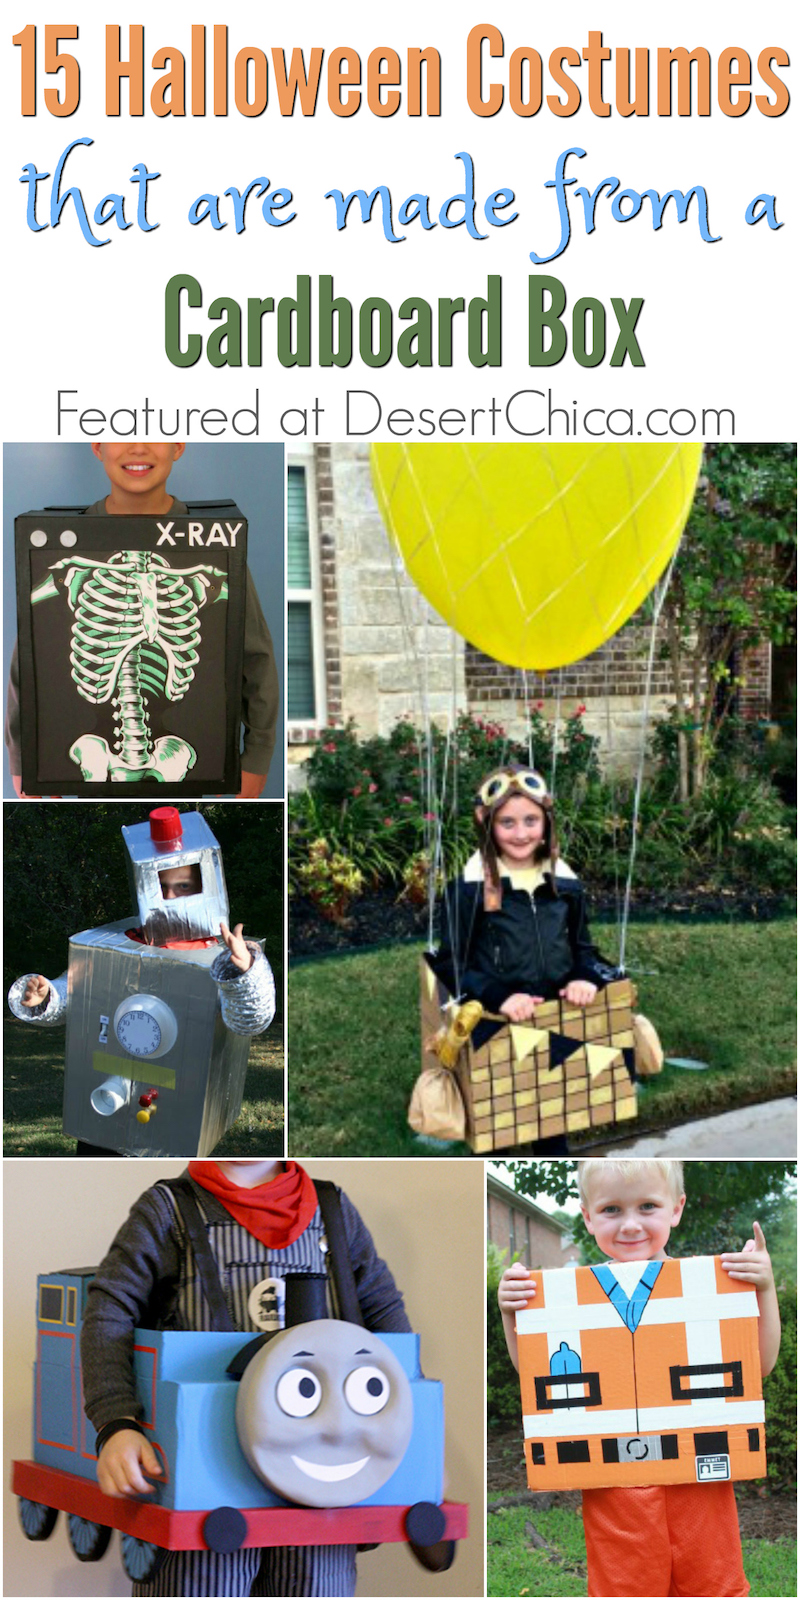 Need a little inspiration for Halloween? Check out these awesome costumes that all started with a cardboard box!